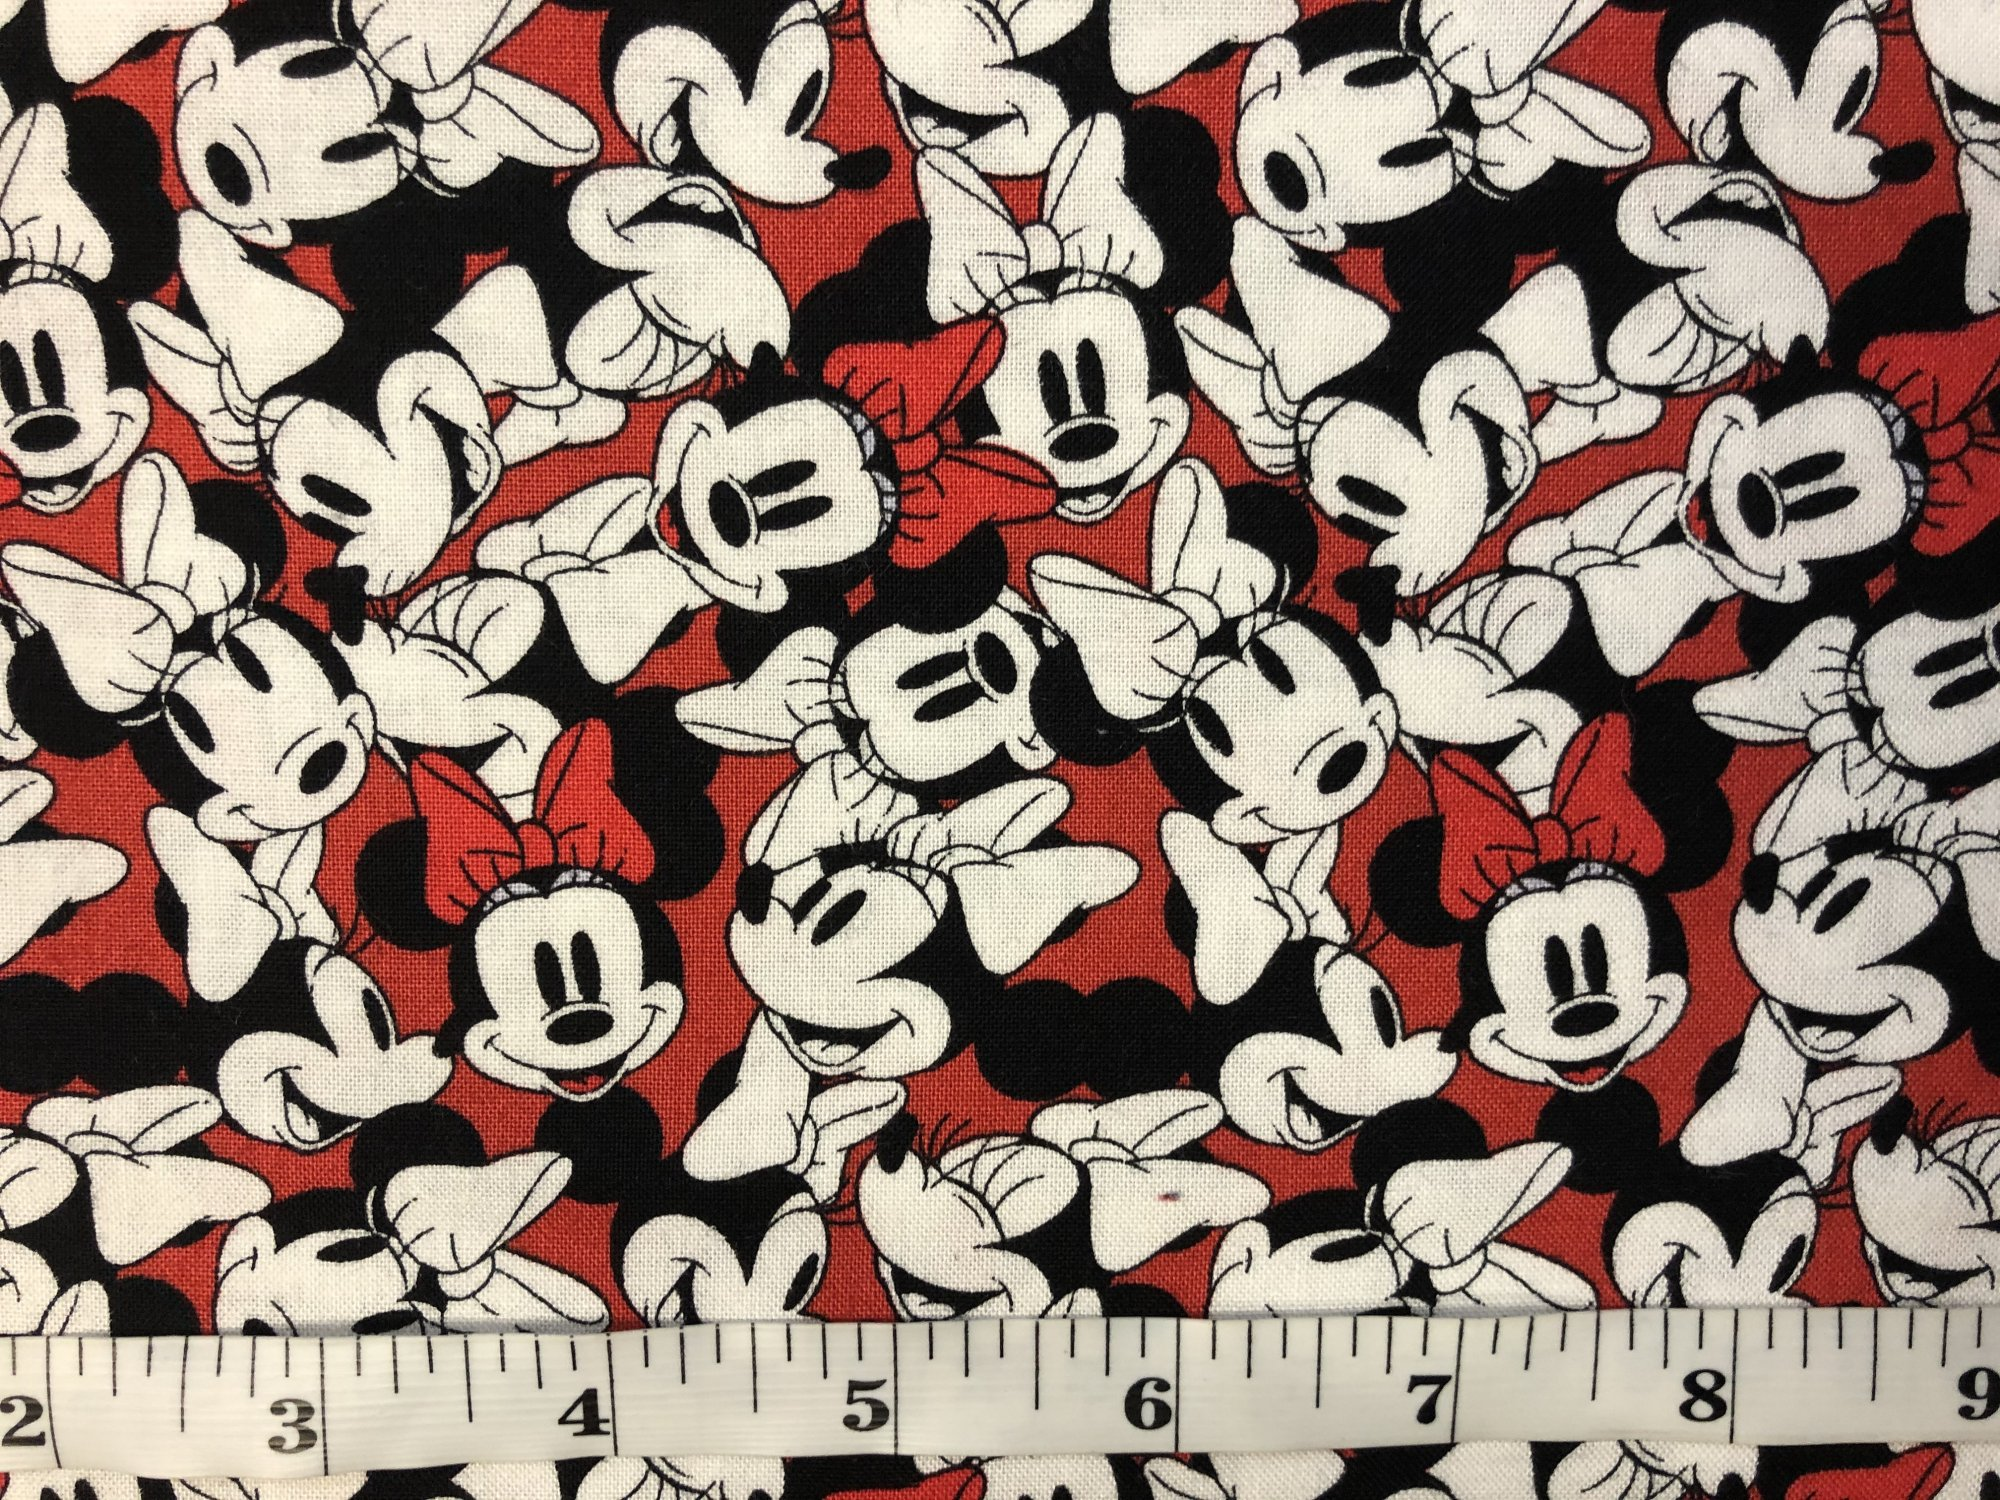 Many Faces of Minnie